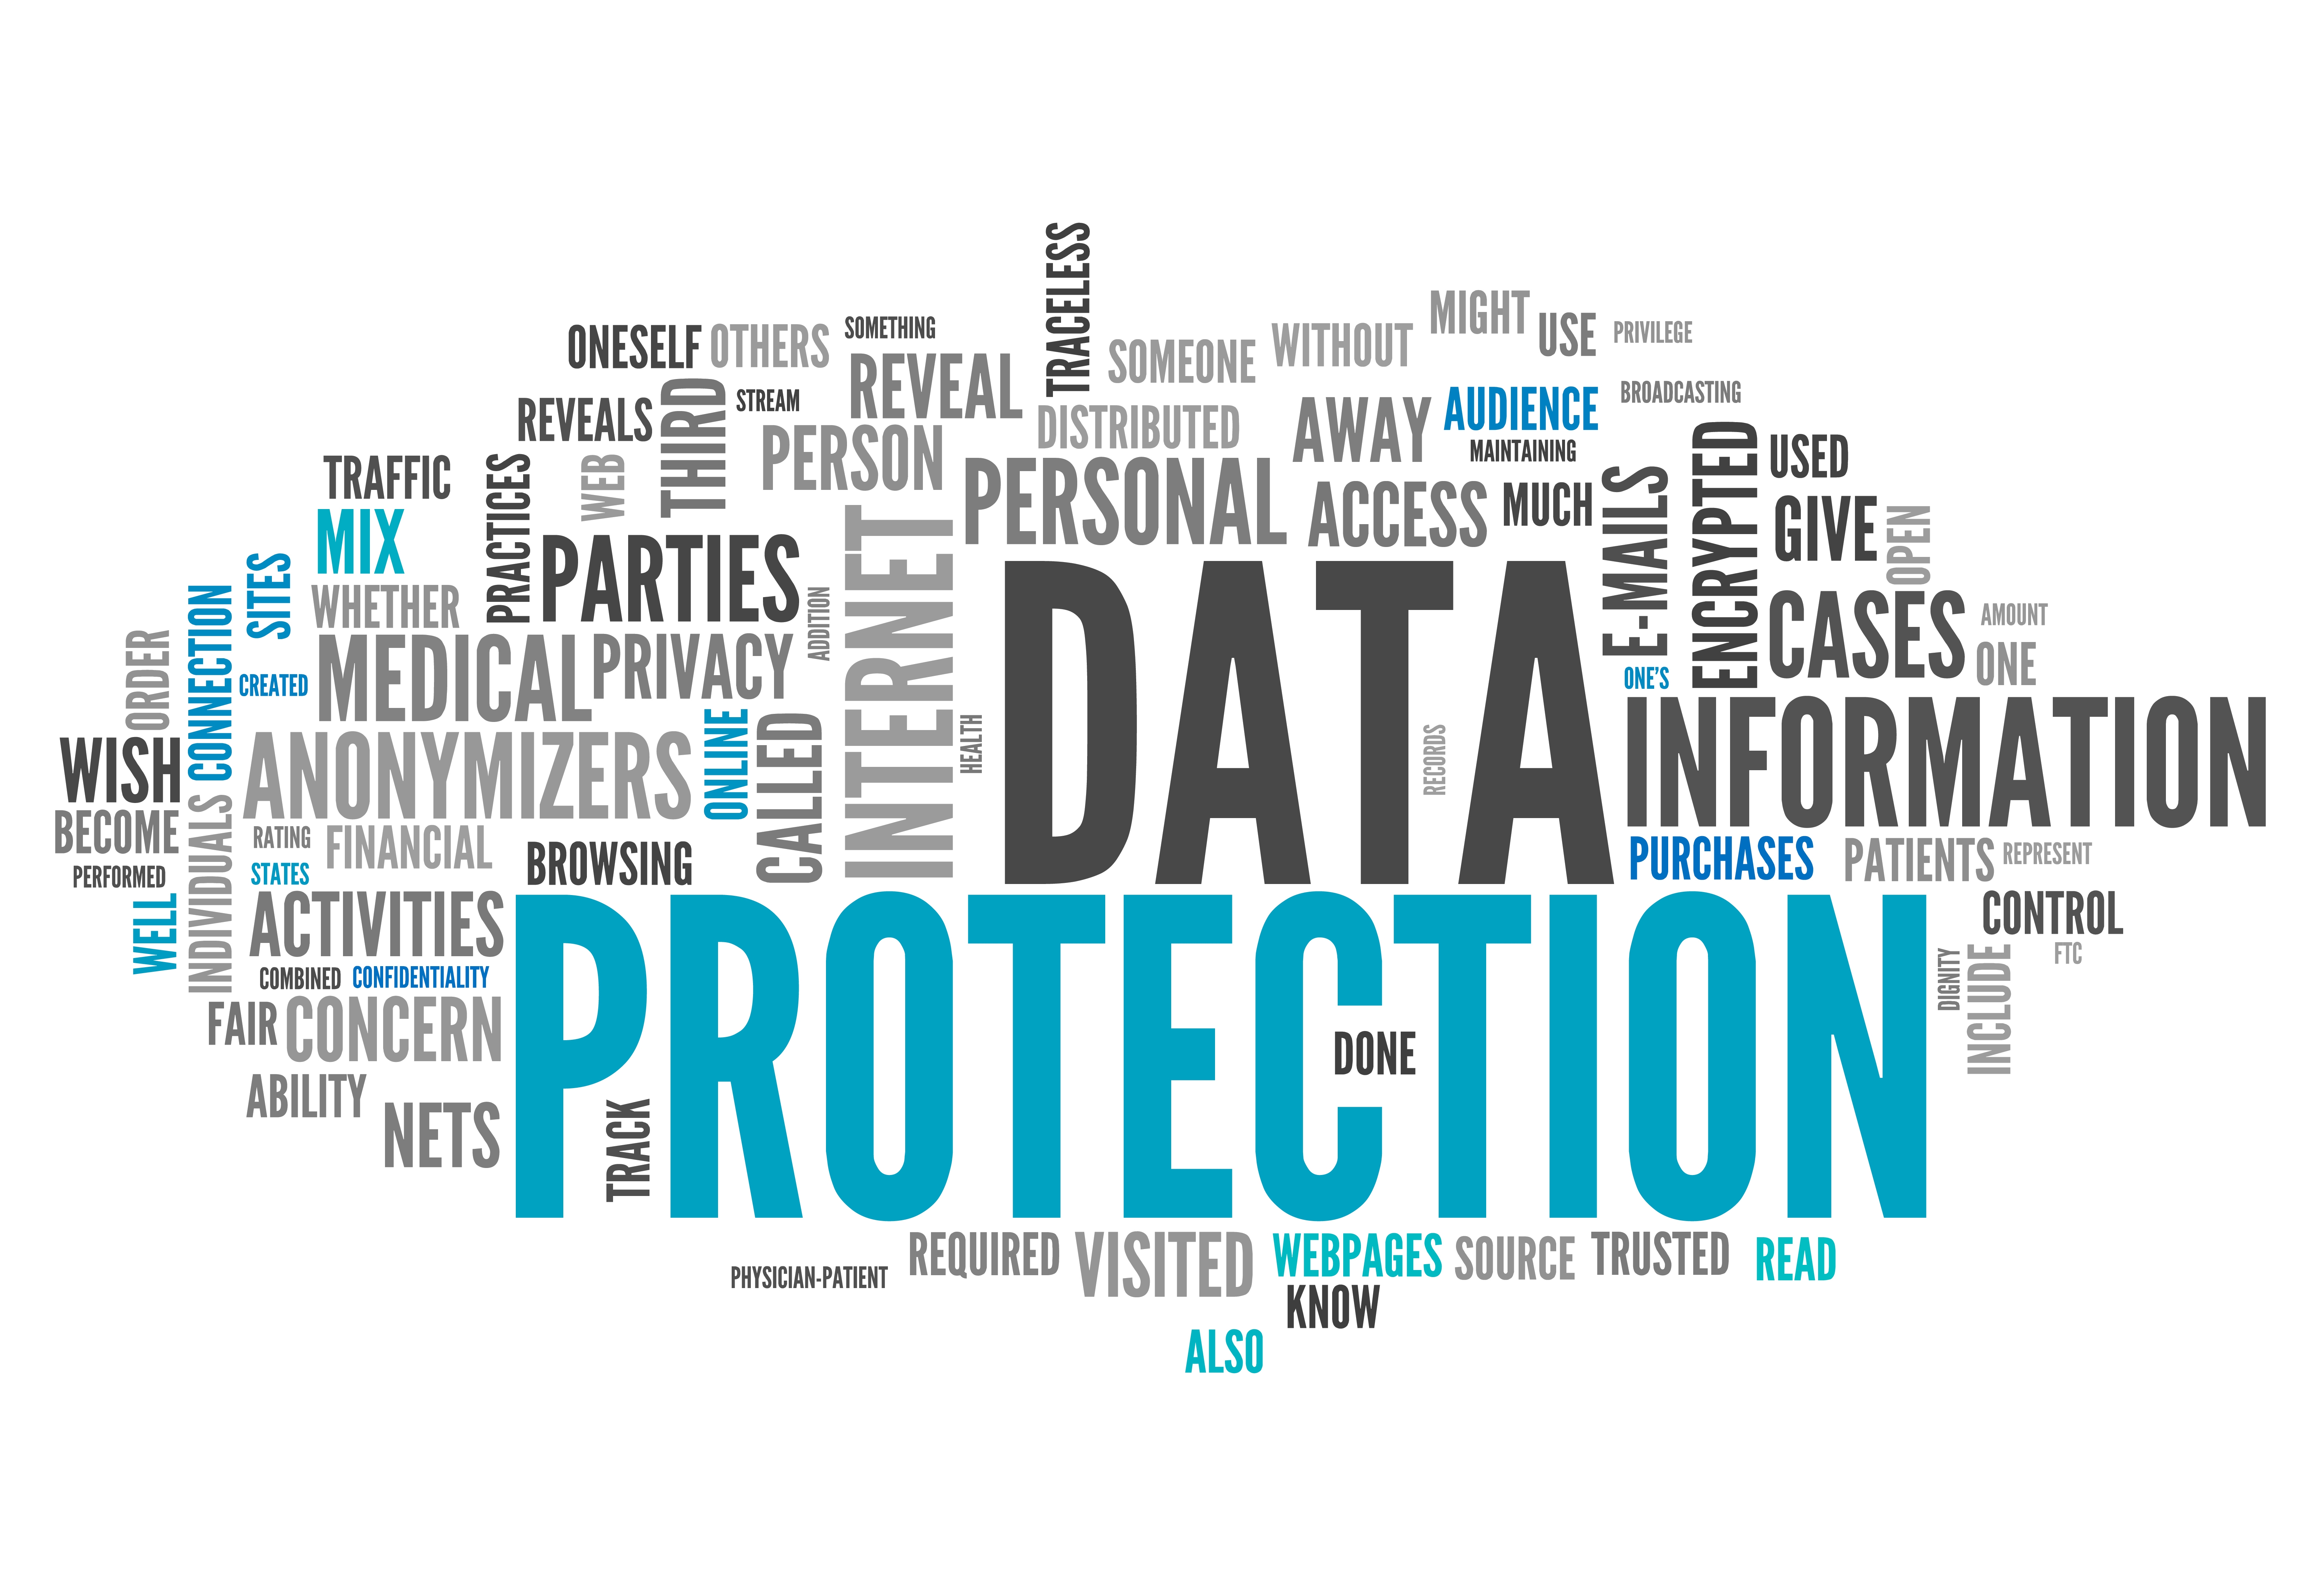 confidentiality and data protection act The data protection act (dpa) 1998  for medical purposes by a health professional or by a person who owes the same duty of confidentiality as a health professional  terms to cover the protection of the data by the agency to the equivalent of the protection provided by the data protection act 1998 rights of the data subject.